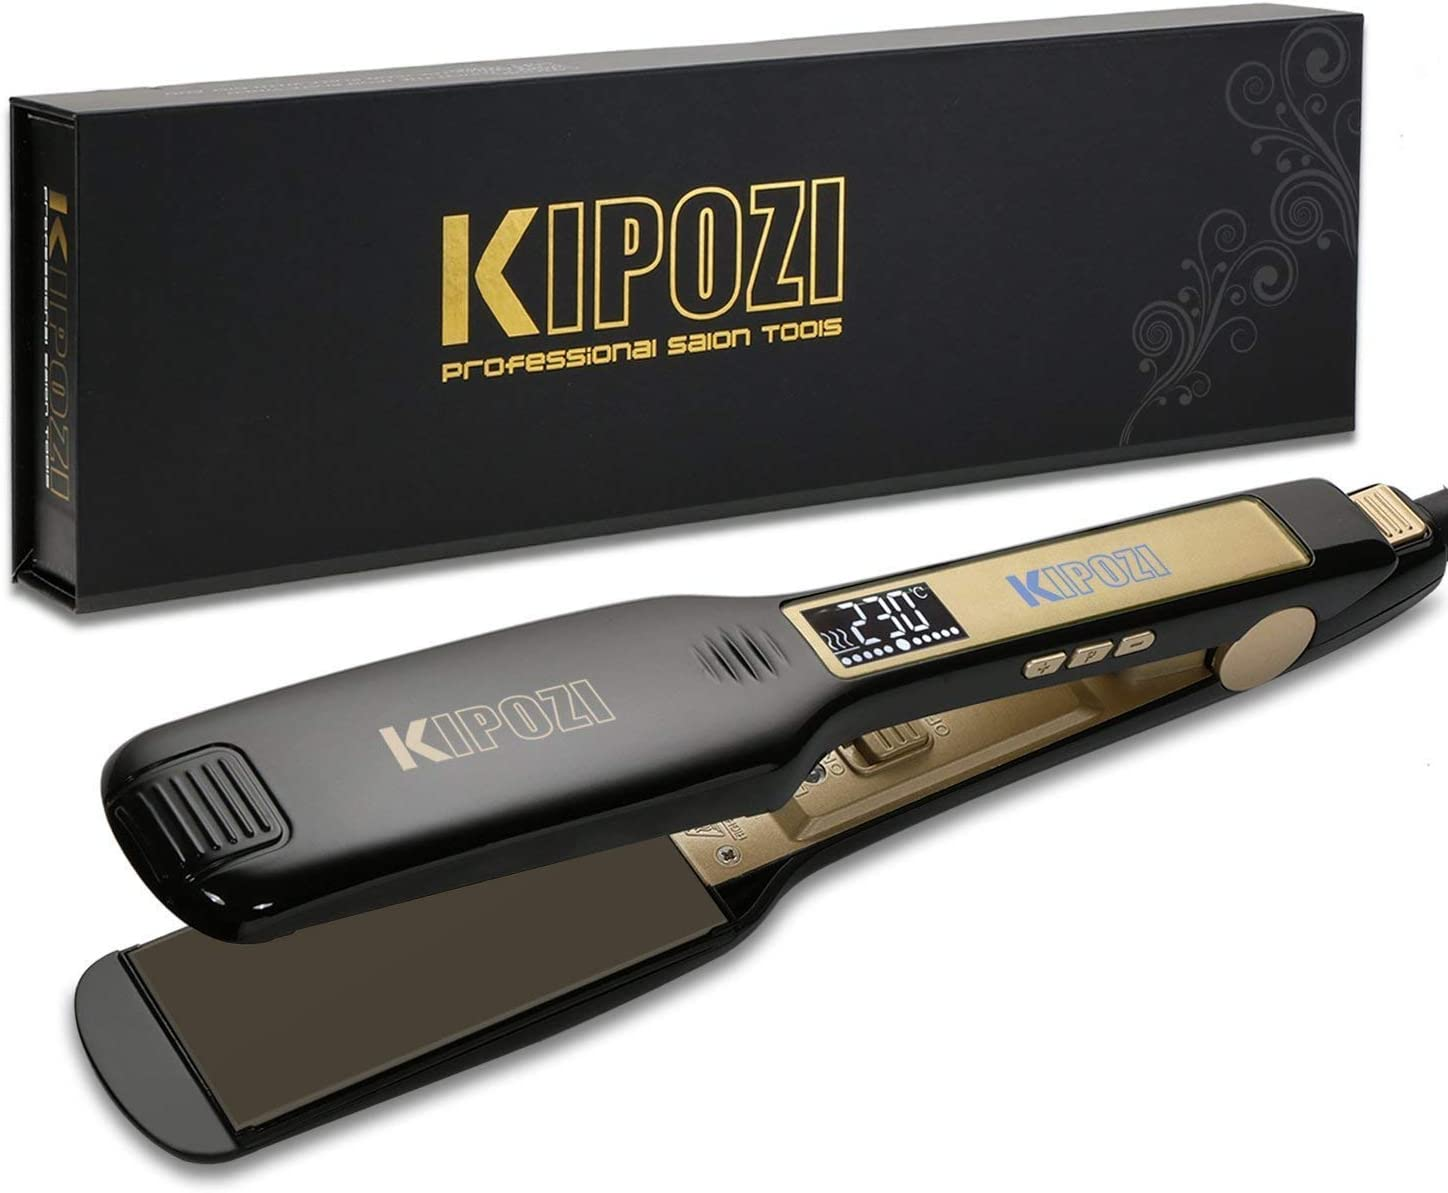 KIPOZI Professional Hair Straighteners for Women 1.75 Inch Wide Plates straighteners Flat Iron with Digital LCD Display for Salon Fast Hair Styler